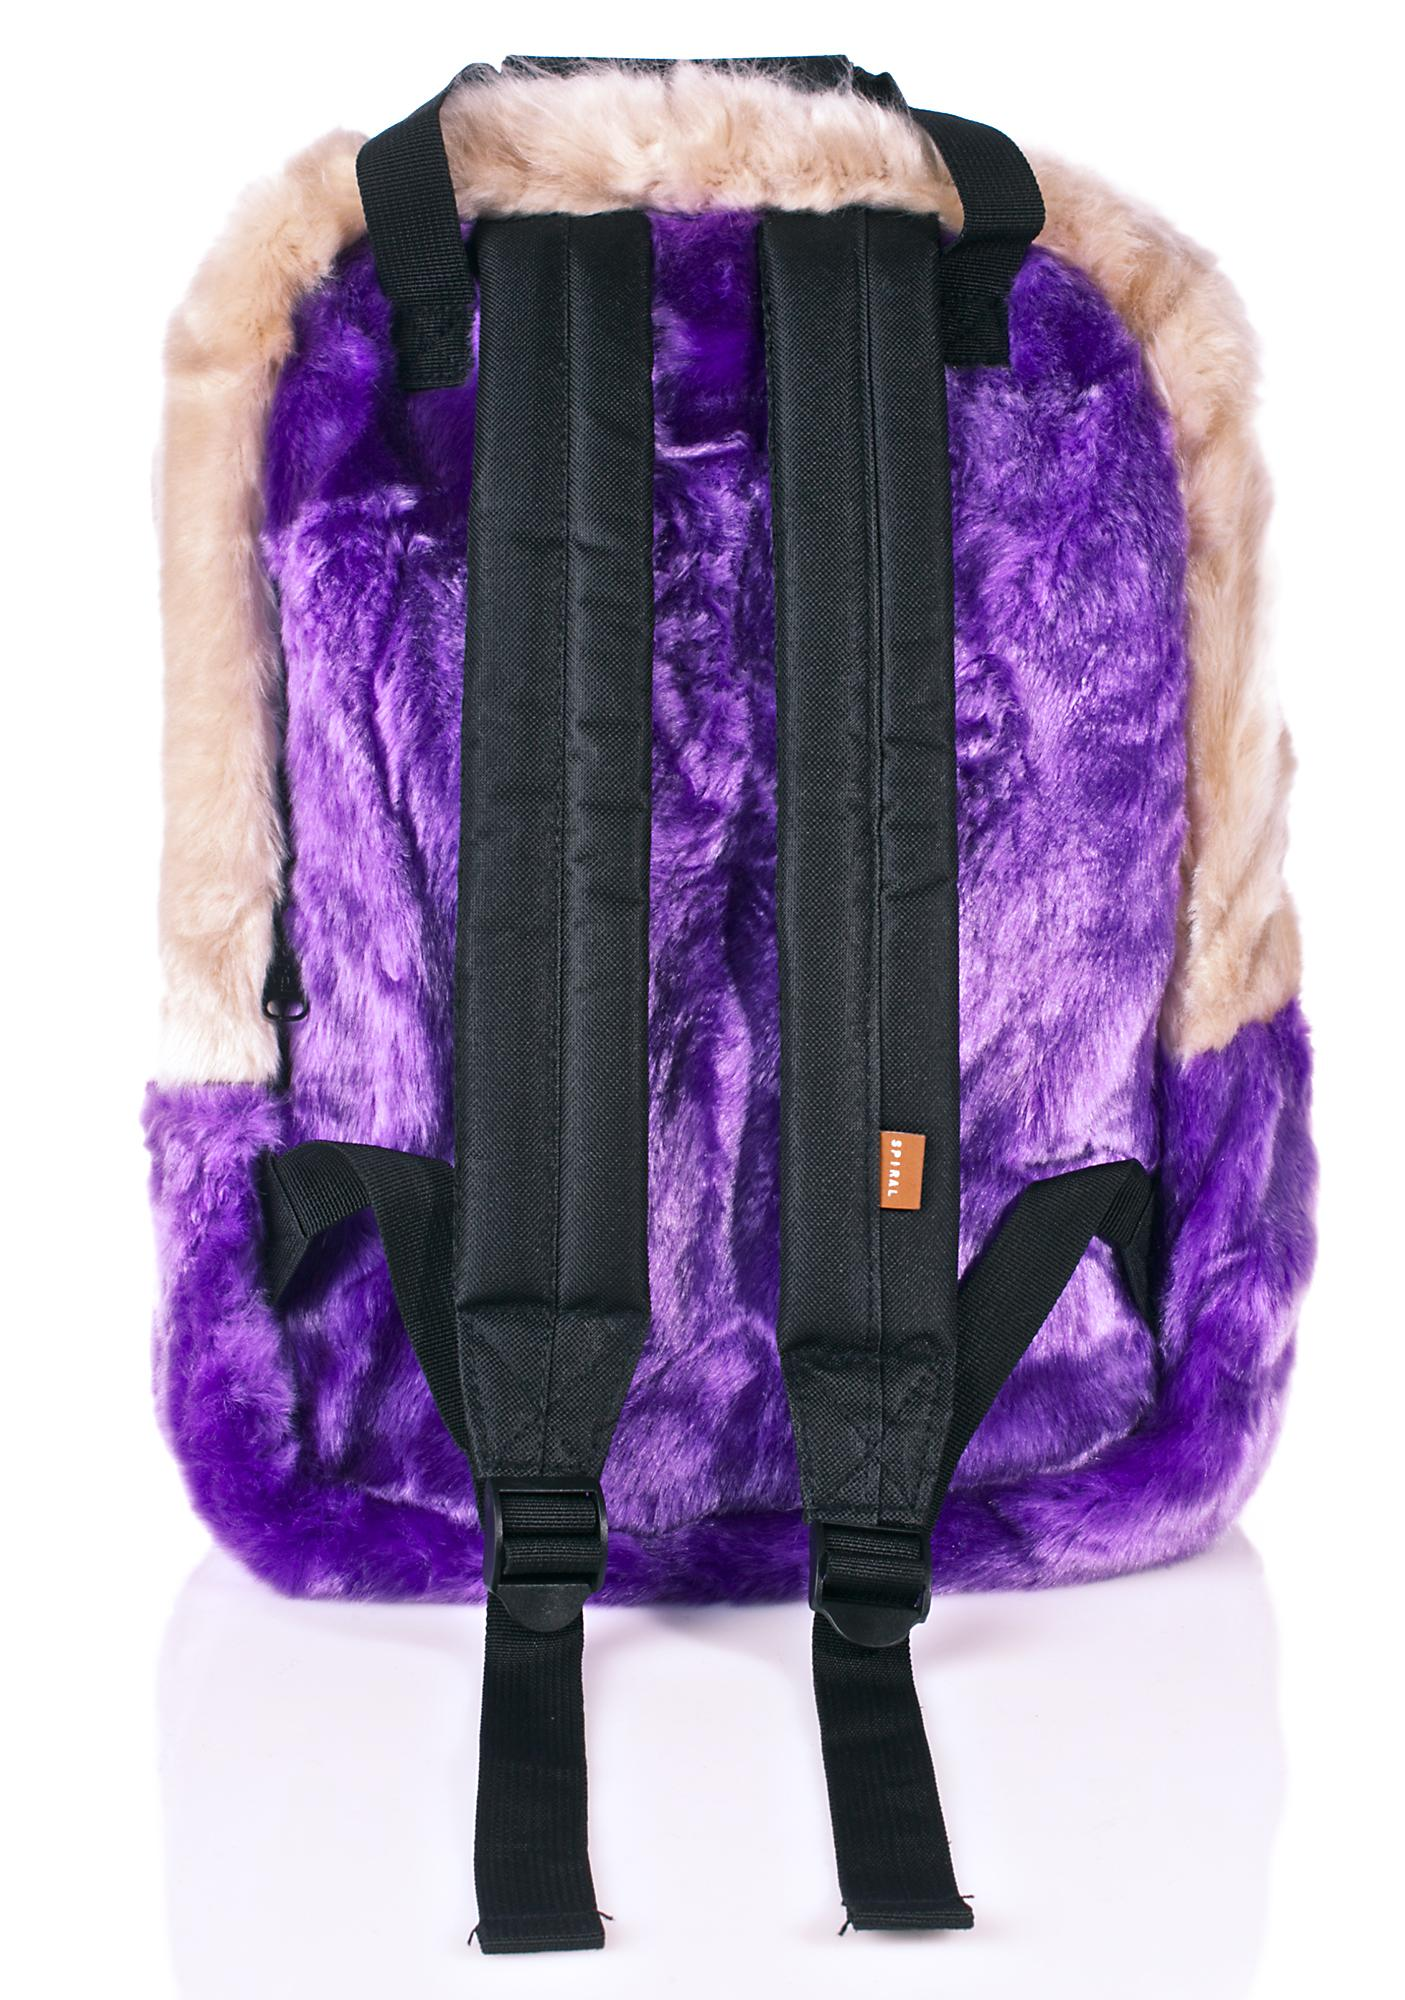 Spiral UK Faux Fur Nude OG Backpack